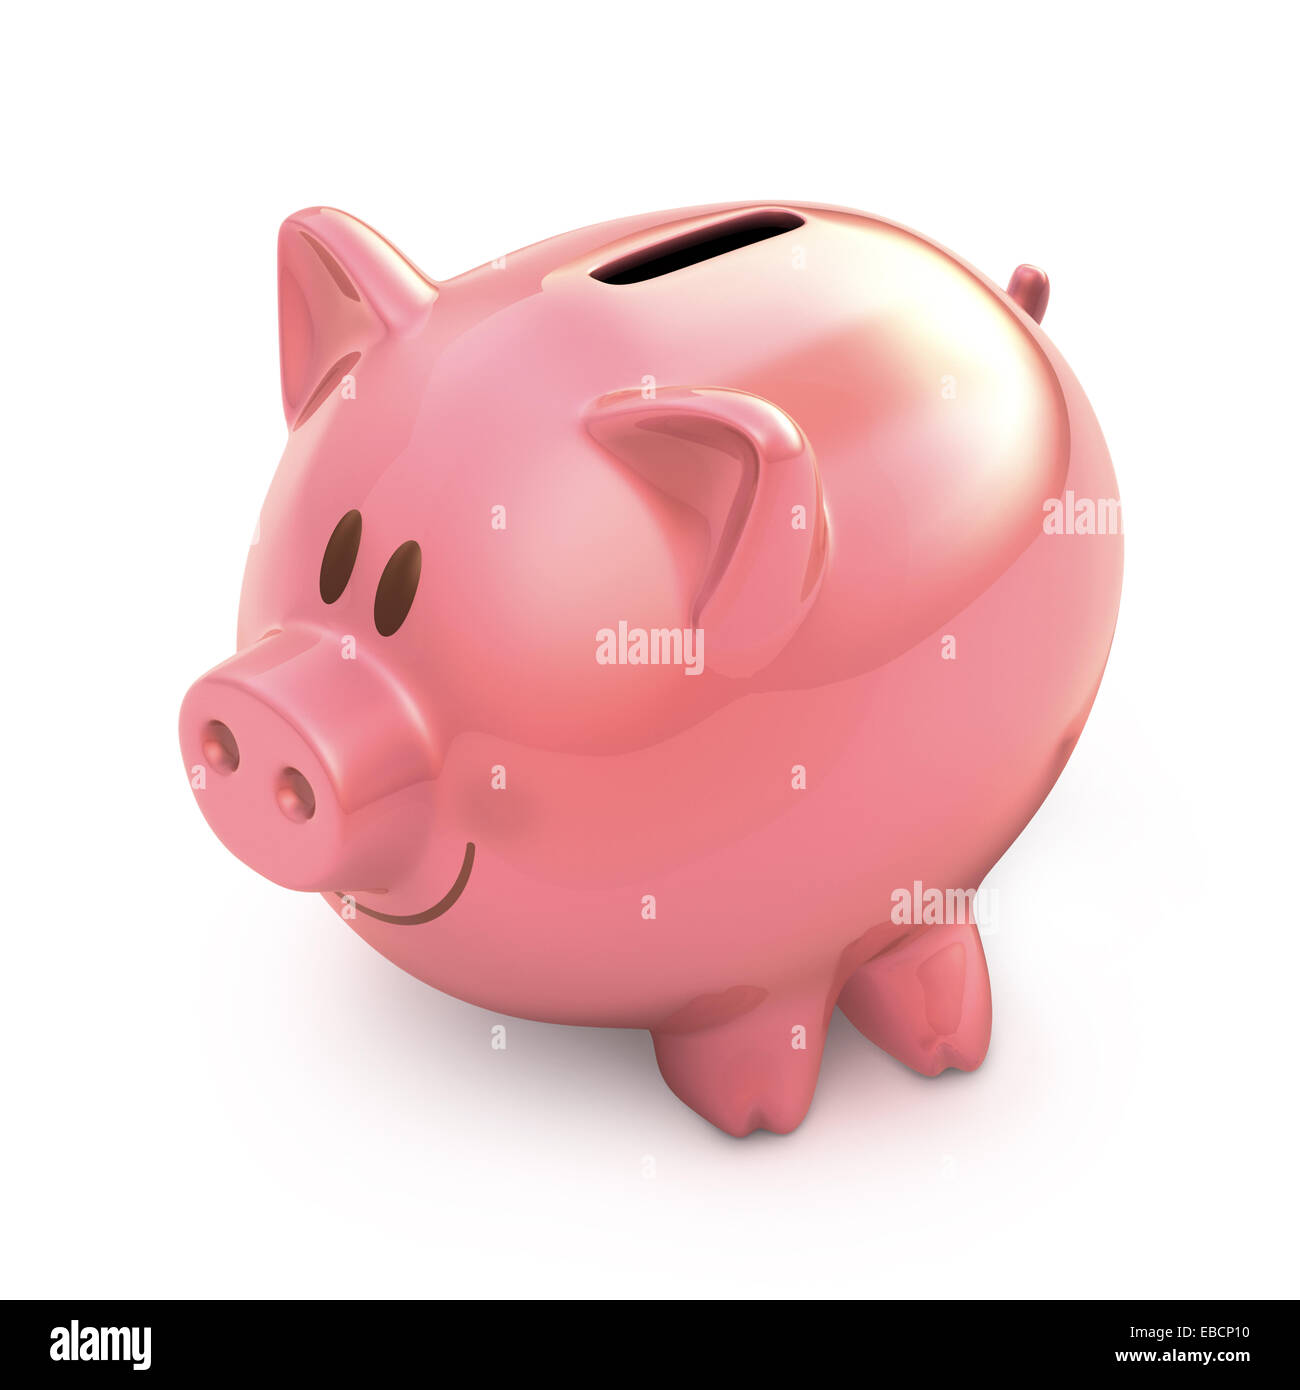 Piggy bank on white background with clipping path included. - Stock Image